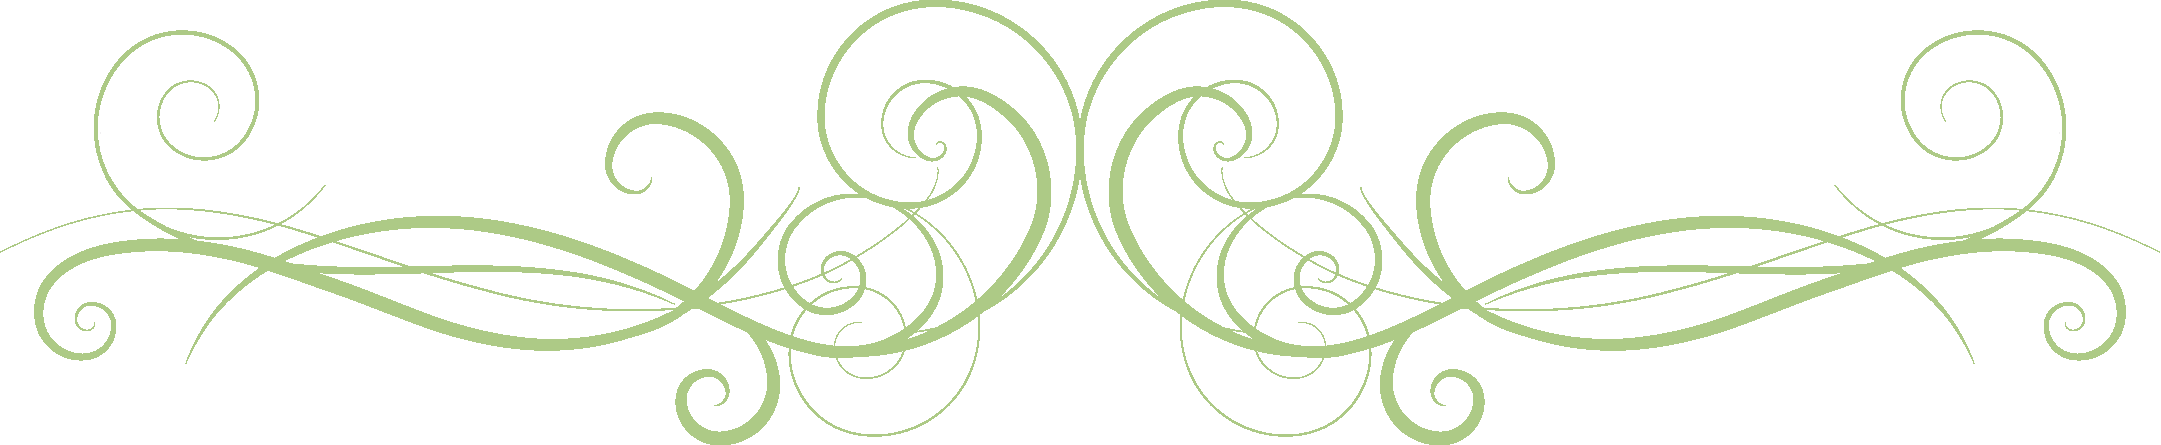 Swirl vector png. Swirls transparent pictures free